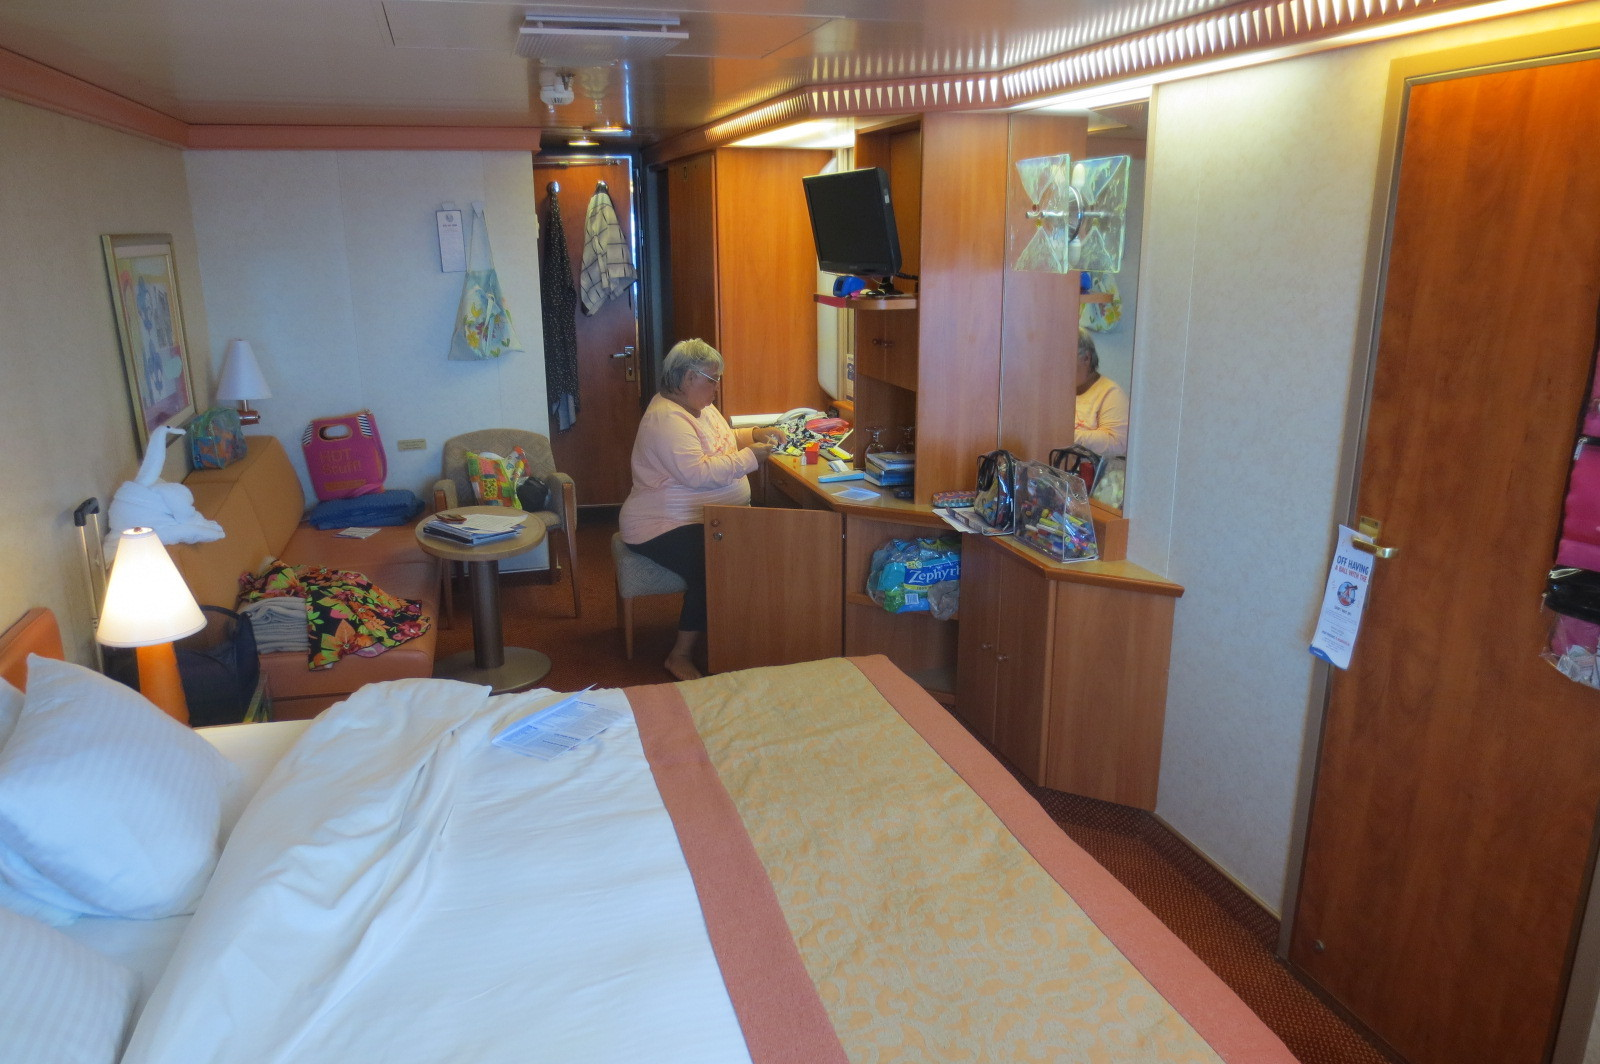 Rooms Review: Carnival Liberty Cruise Review